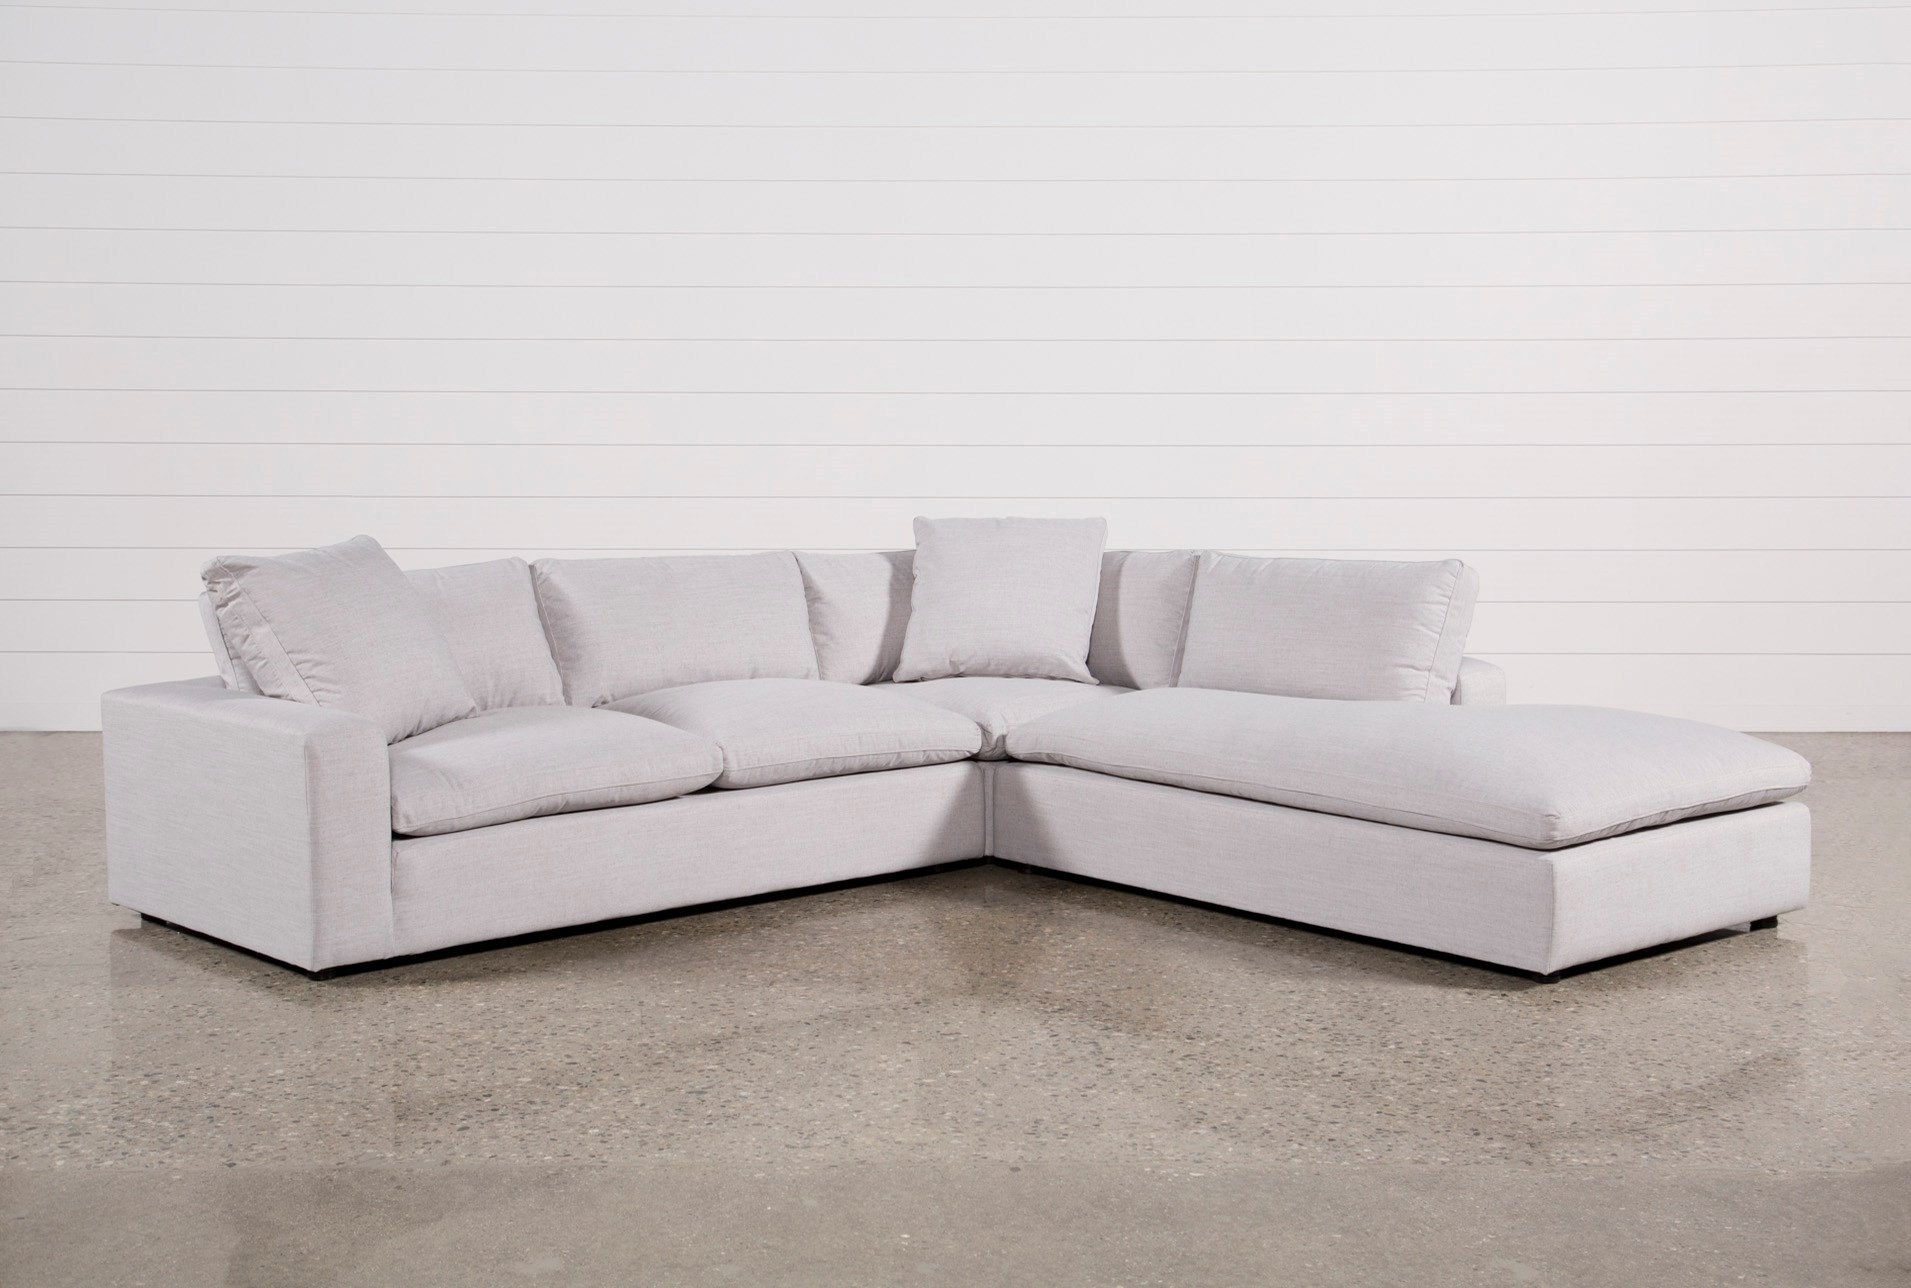 Living Spaces Sectional Sofas Delano 2 Piece W Laf Oversized Chaise For Delano 2 Piece Sectionals With Laf Oversized Chaise (Image 18 of 25)